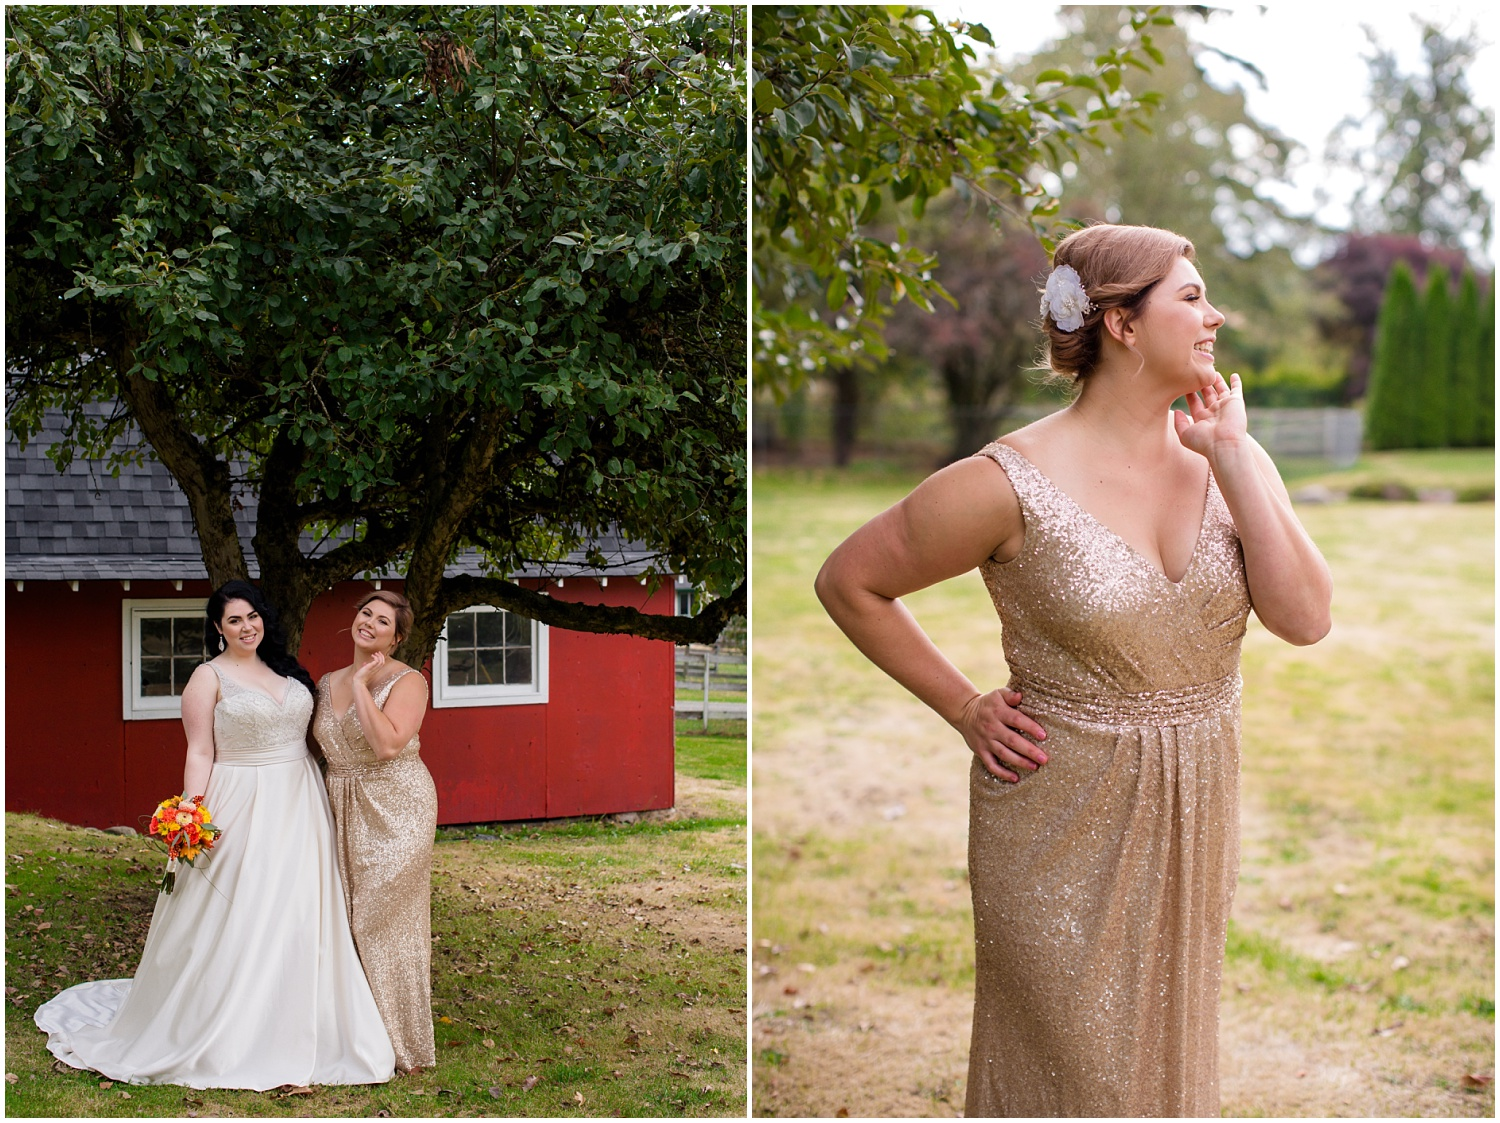 Amazing Day Photography - Everything But The Groom - Stylized Session - Plus Sized Wedding Dresses - Langley Bridal Salon (5).jpg